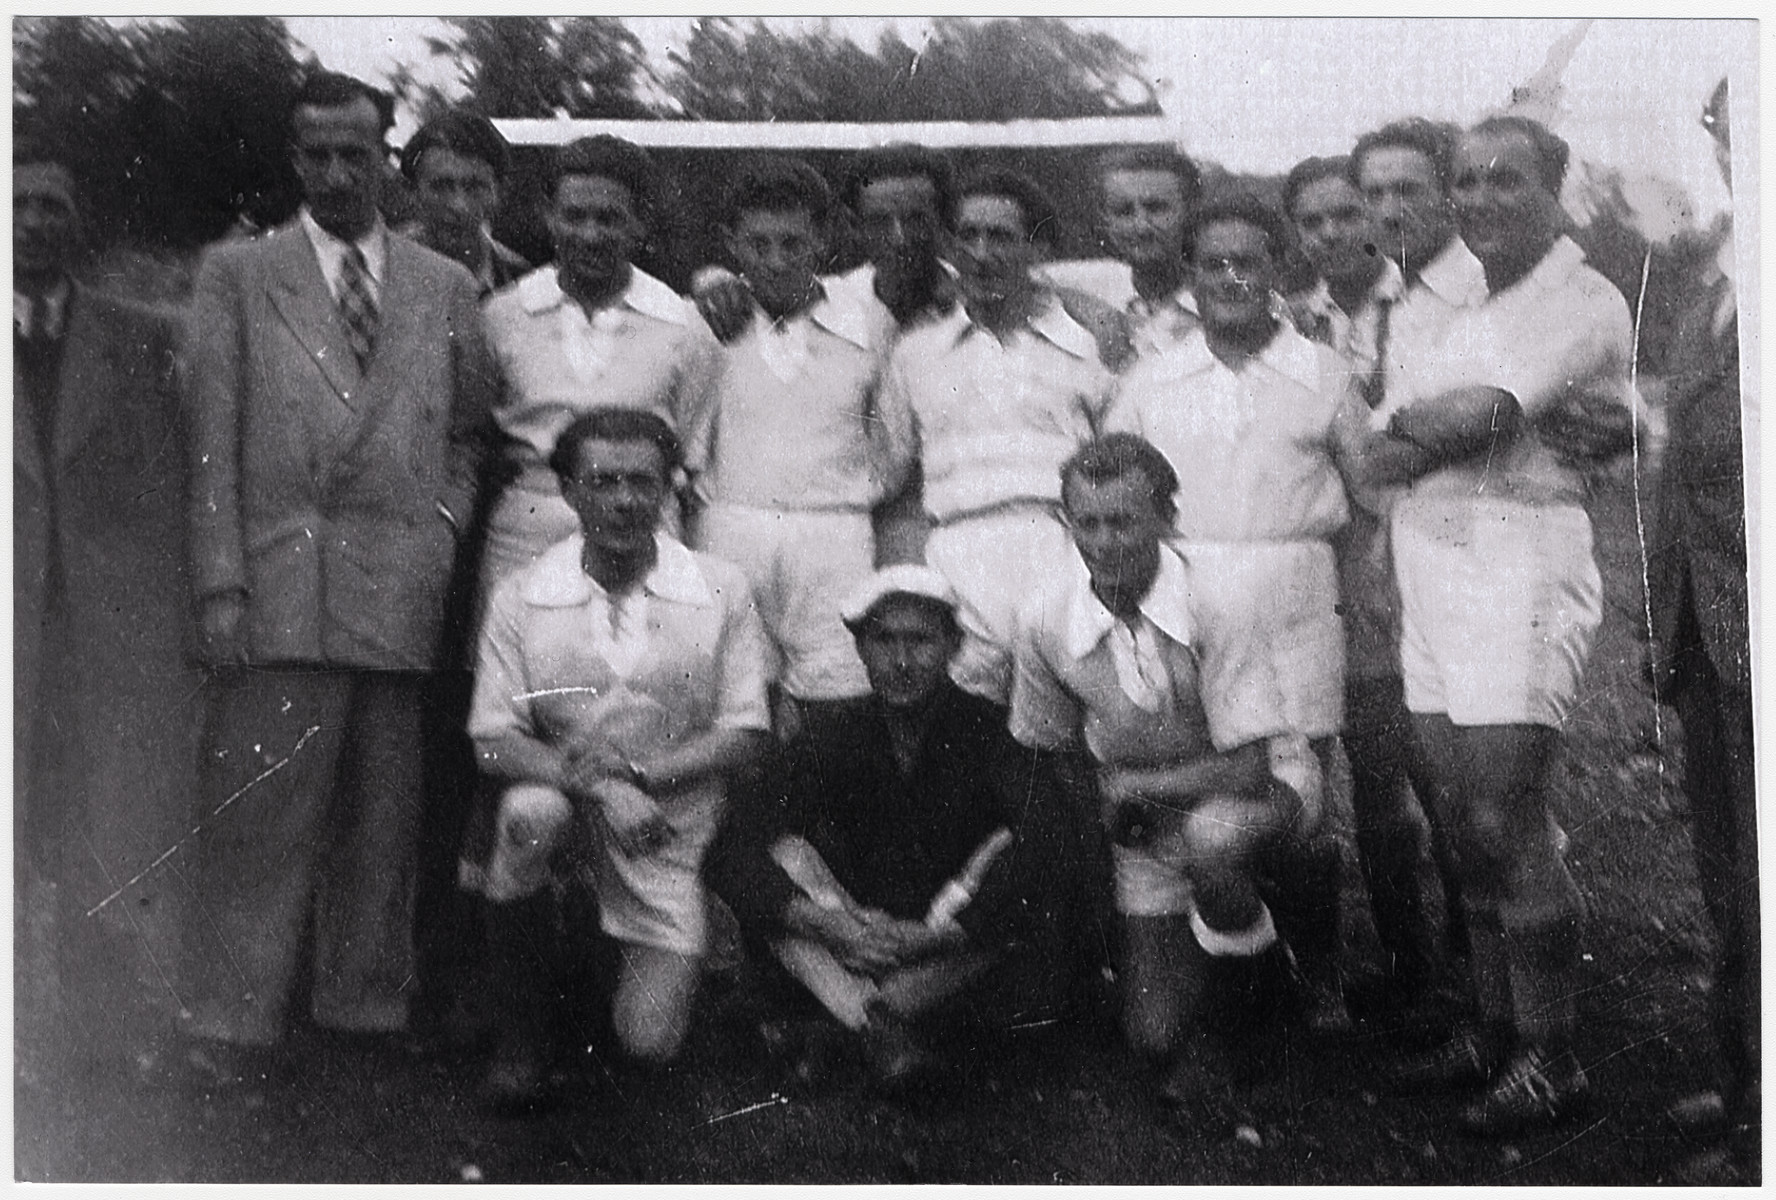 Portrait of the soccer team in the Munich displaced persons camp.